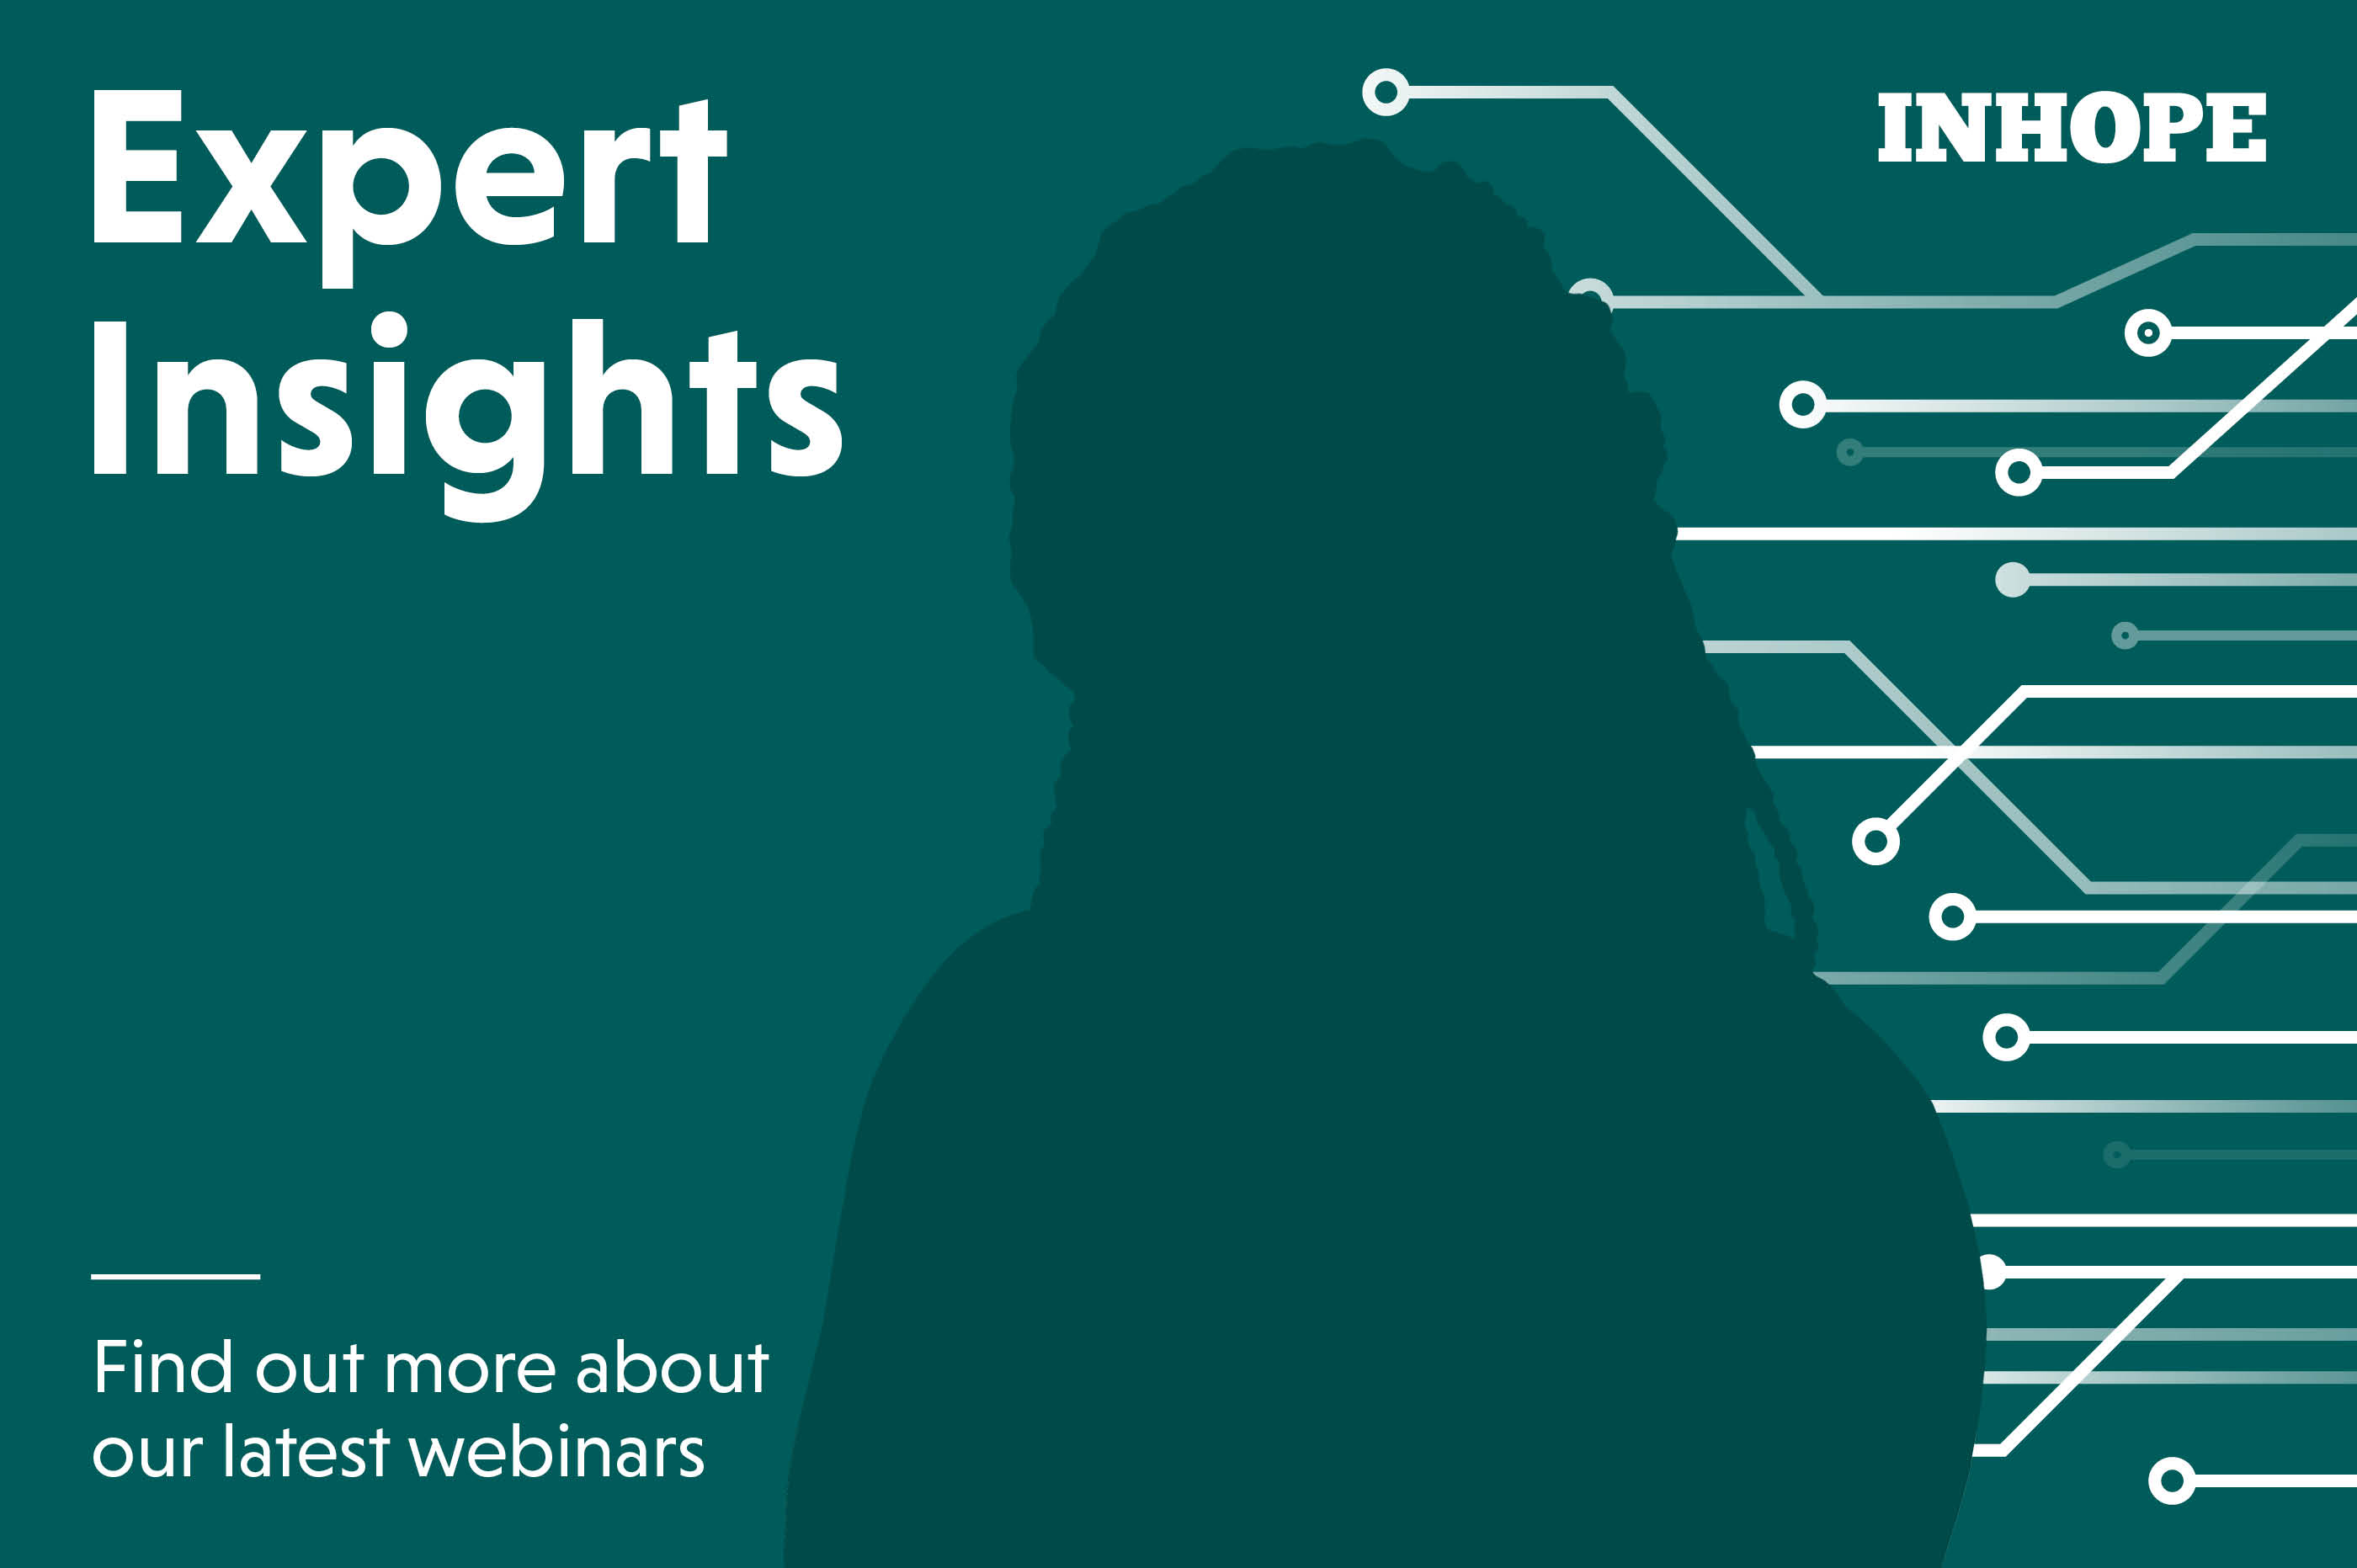 Expert Insights – Webinars by INHOPE